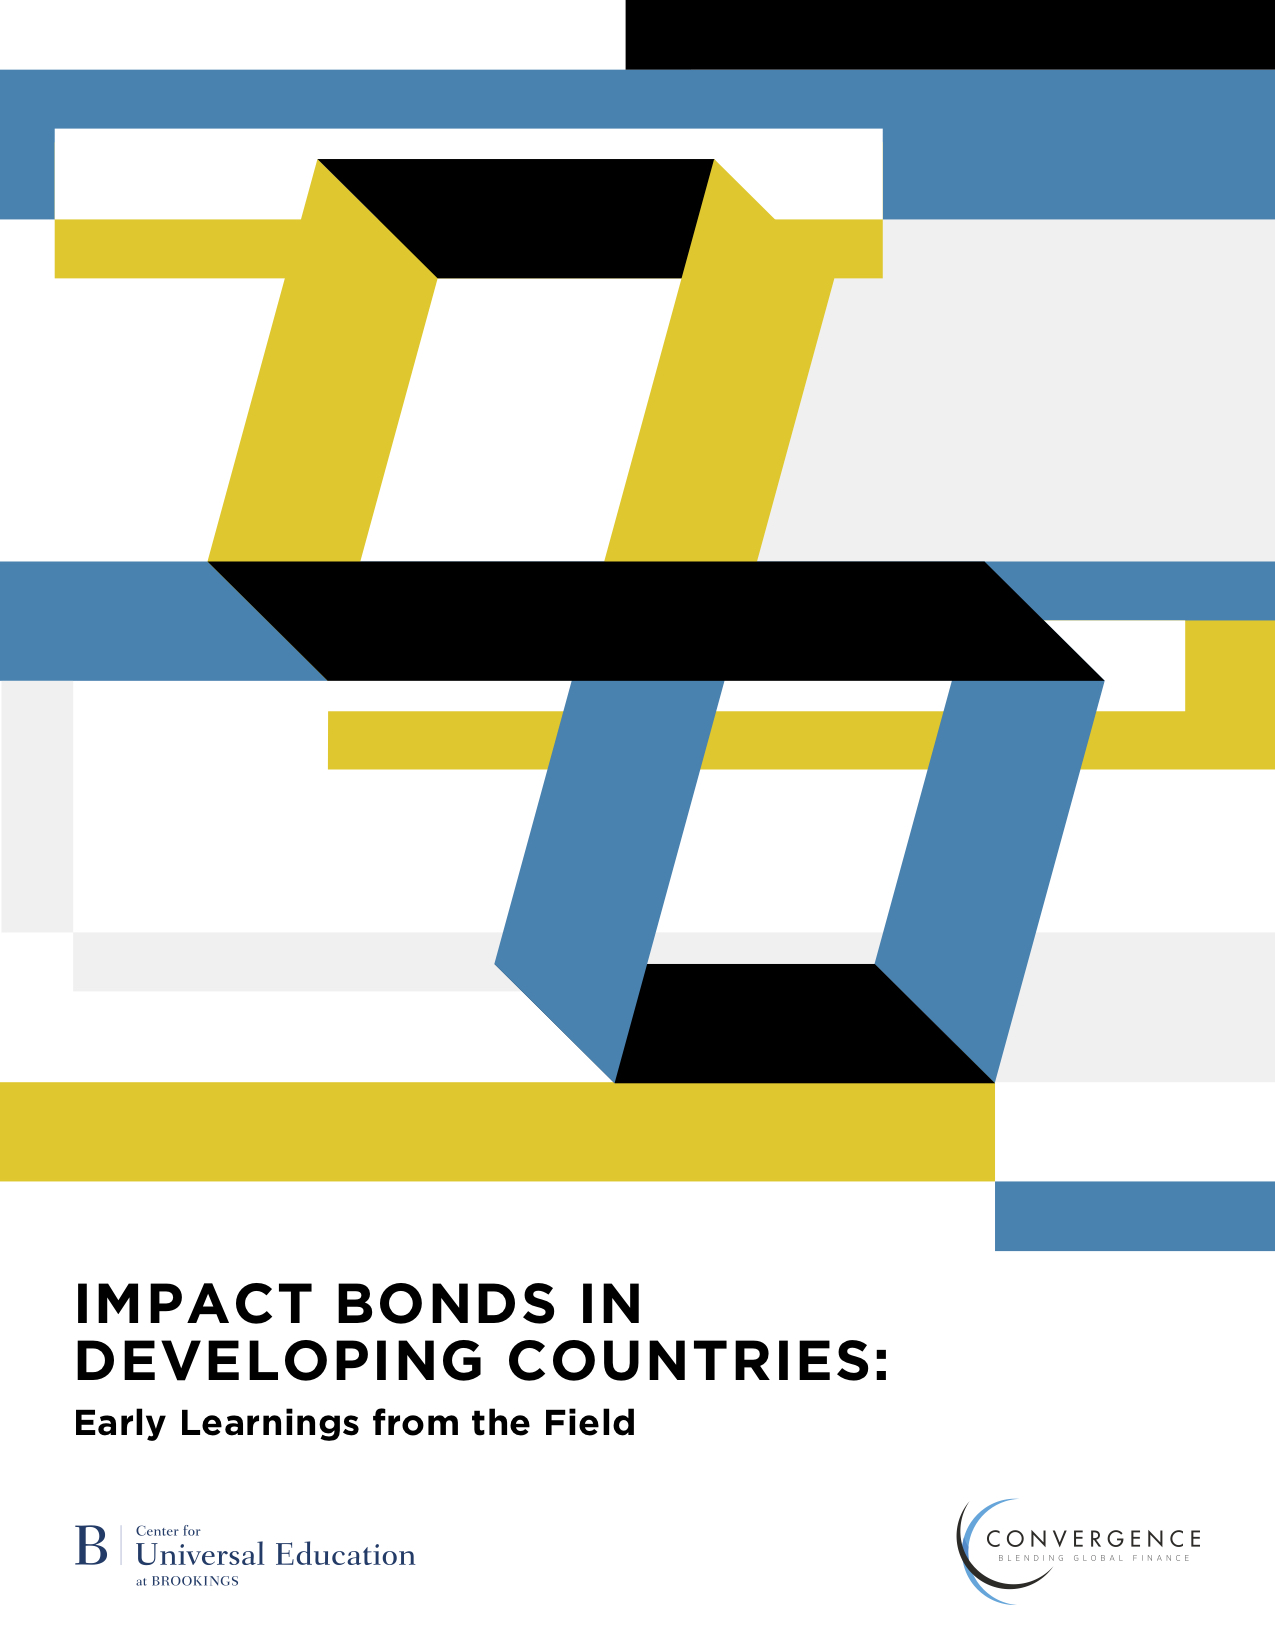 Impact Bonds in Developing Countries: Early Learnings from the Field